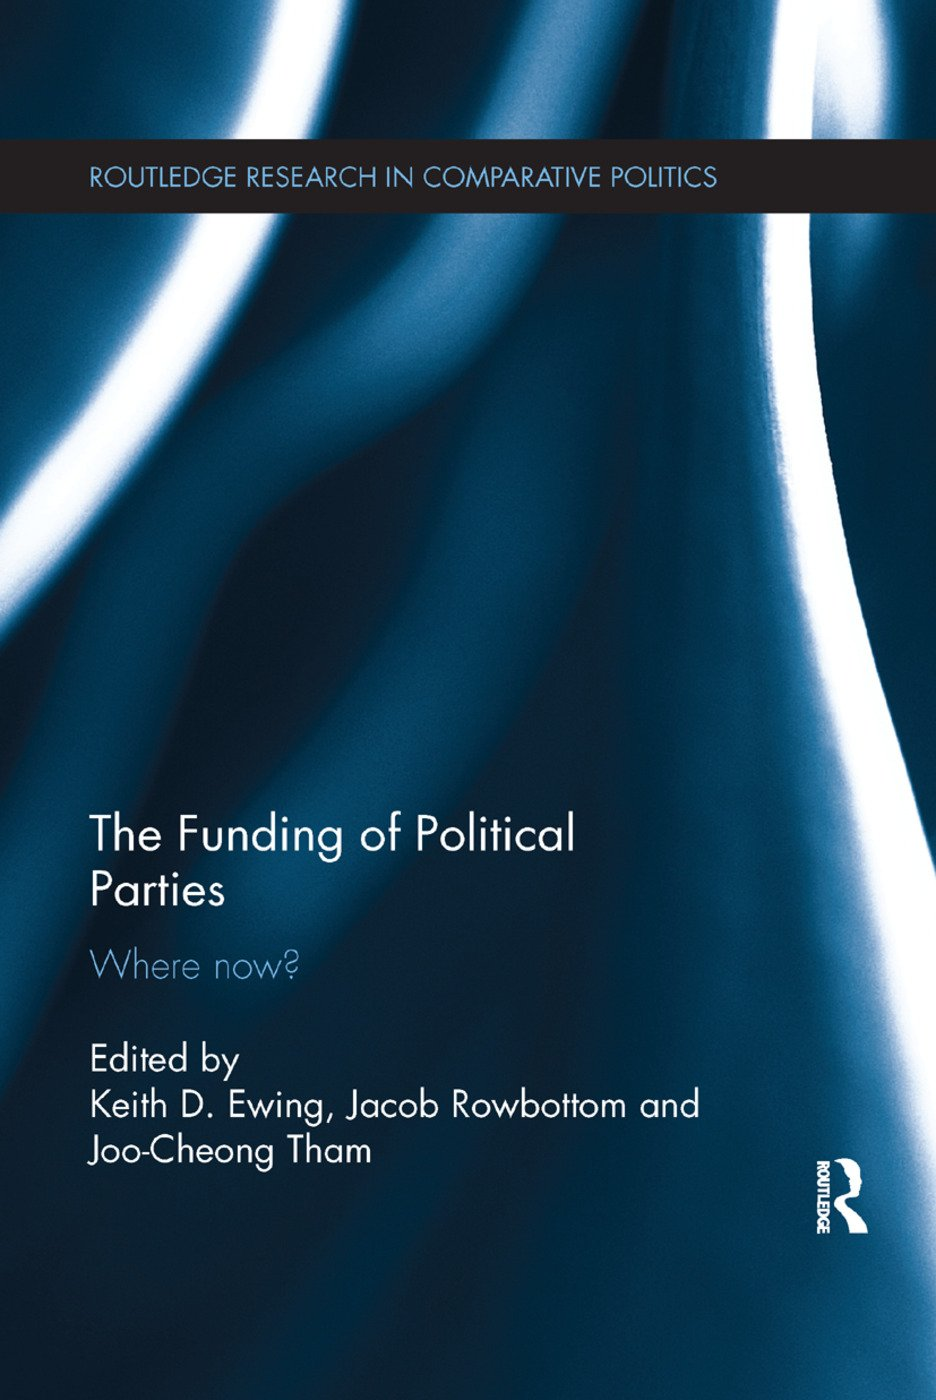 The Funding of Political Parties